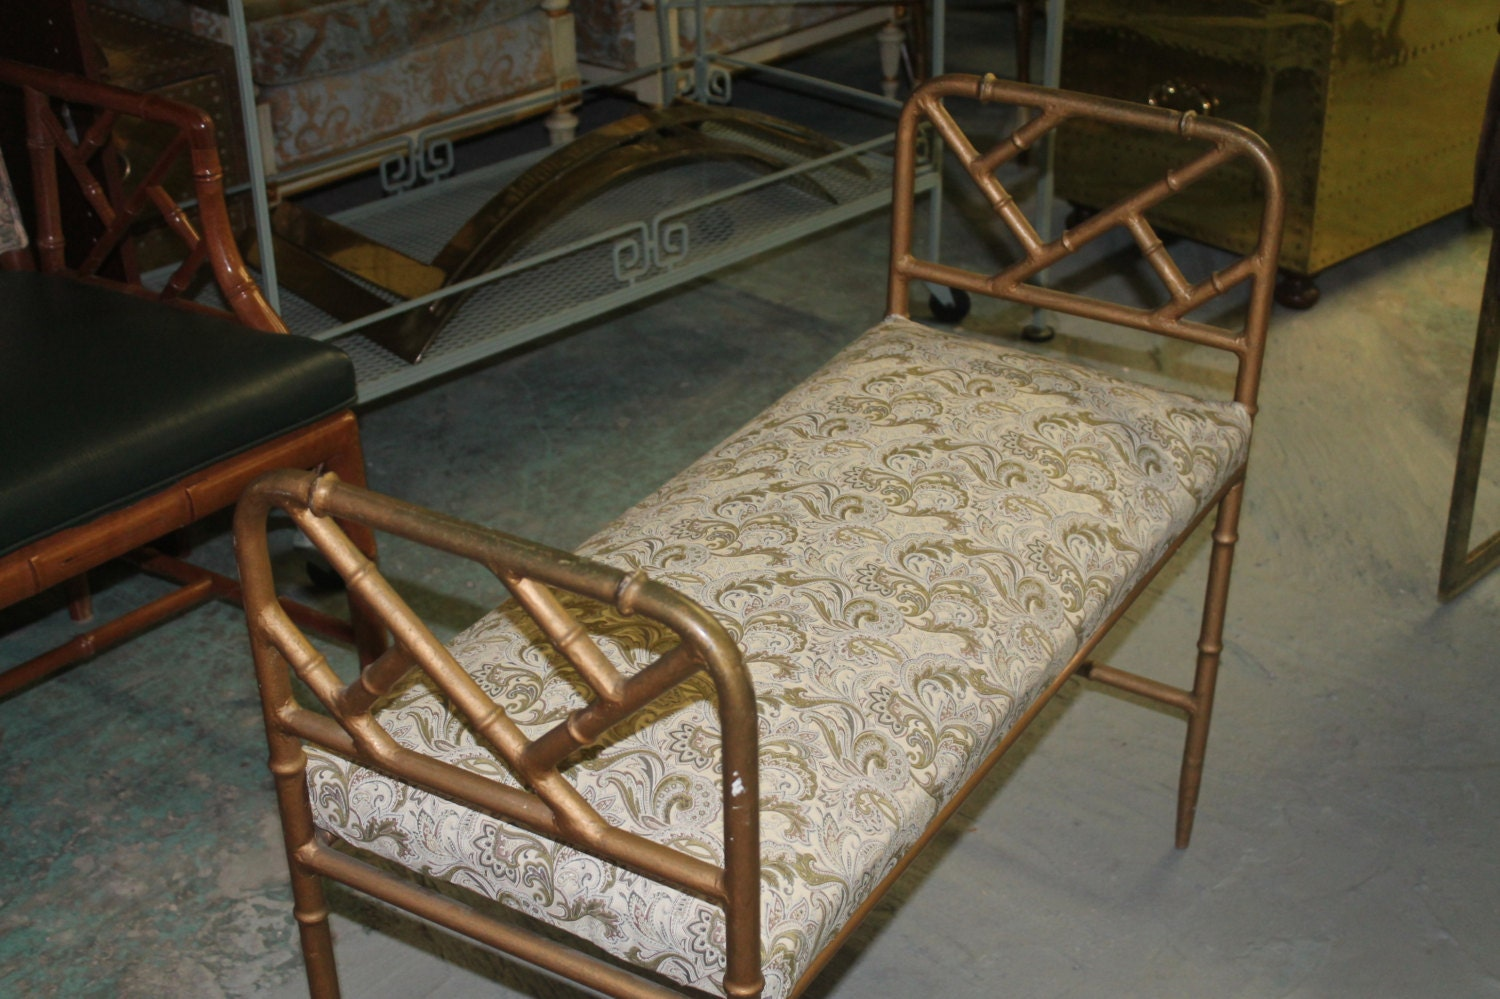 Chinese Chippendale Bed : Vintage Chinese Chippendale Bench Bed Chair by feelinvintage